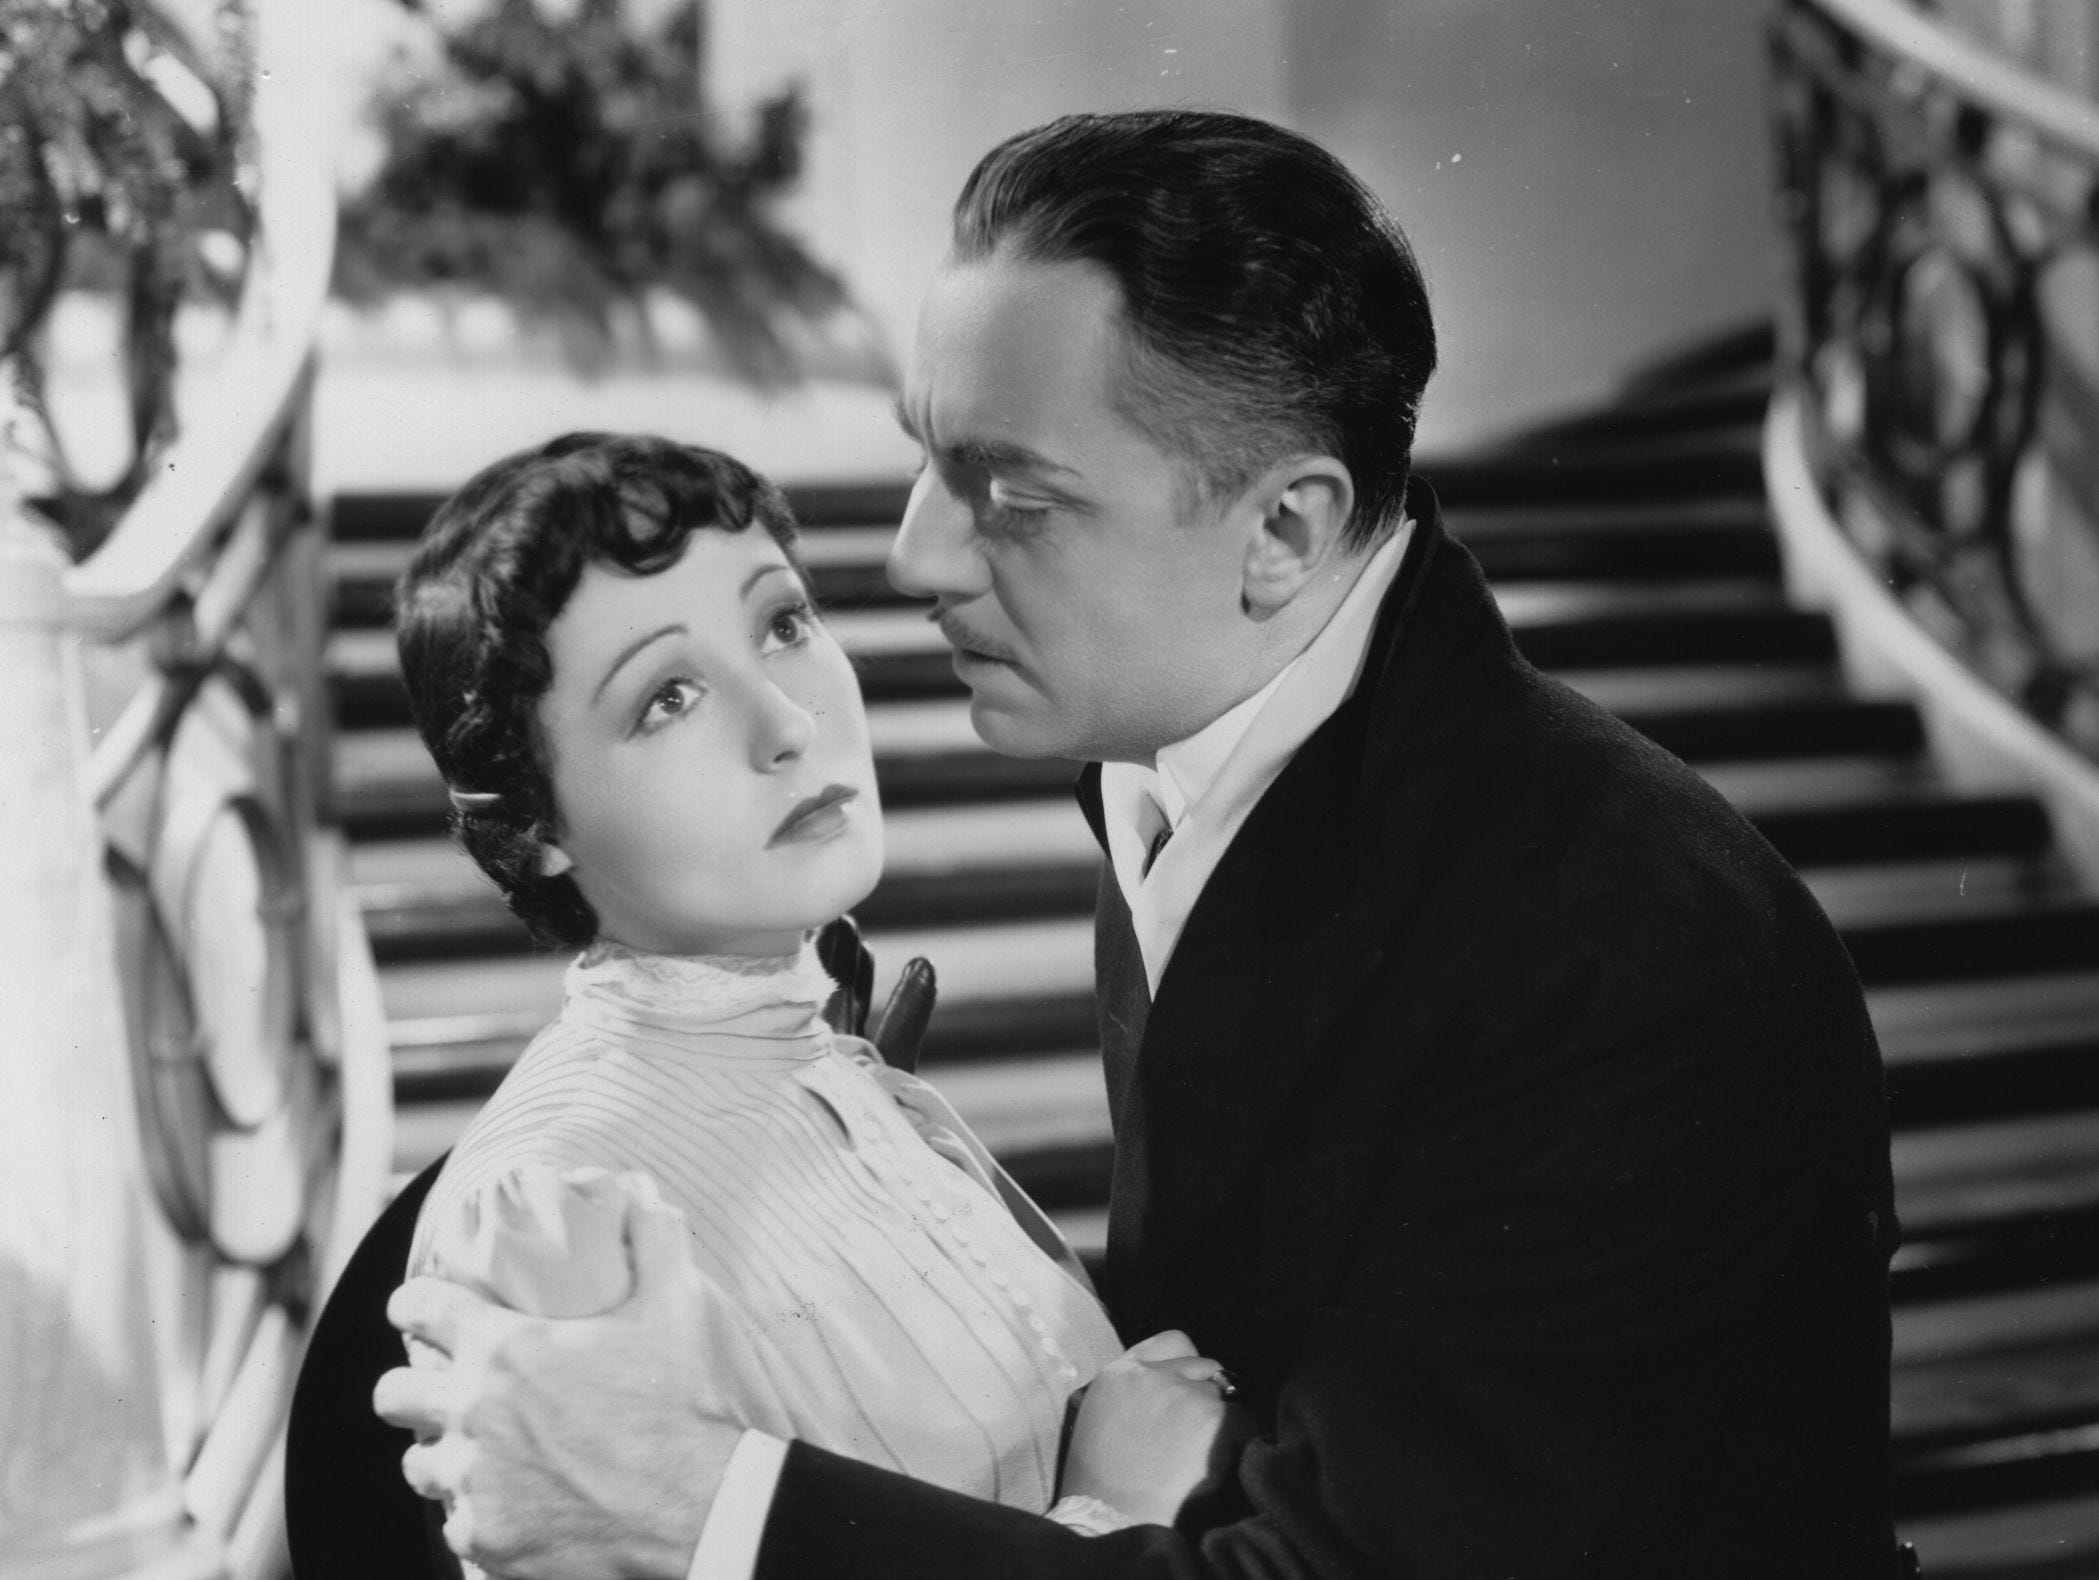 ONE TIME USE 2/21/2019 1936:  William Powell (1892-1984) and Luise Rainer star in the film 'The Great Ziegfeld', a biopic of the Broadway impresario Florenz Ziegfeld.  (Photo by Hulton Archive/Getty Images)